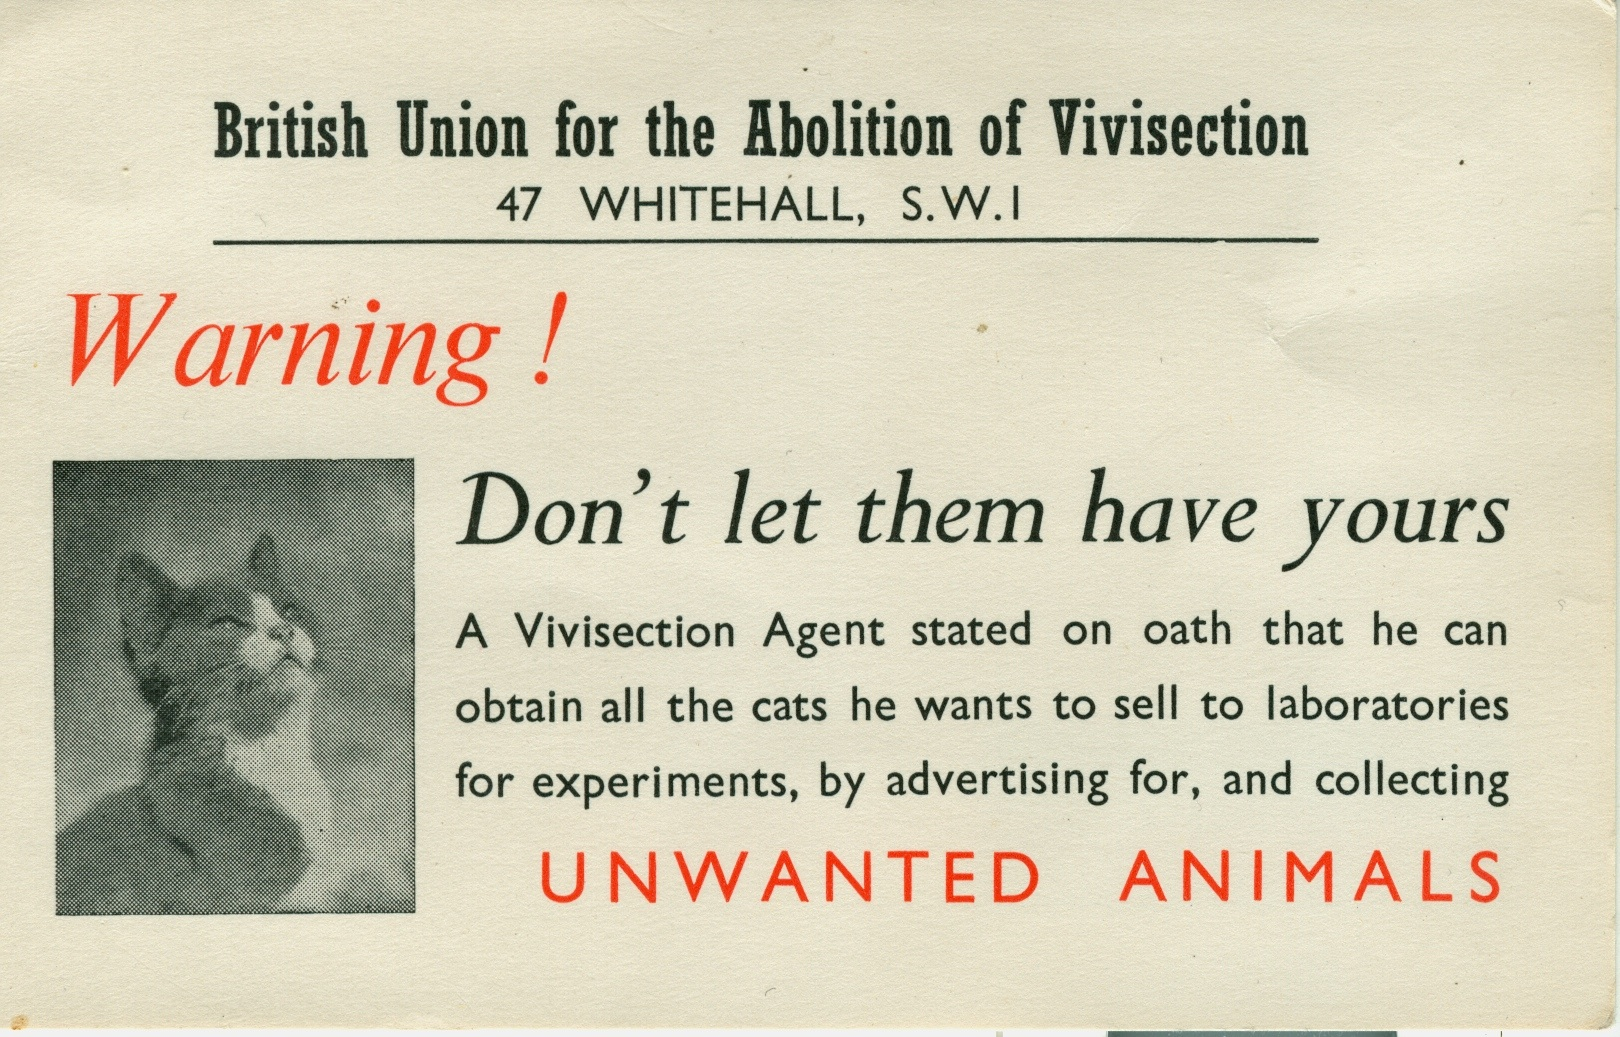 Anti-vivisection in nineteenth century Britain